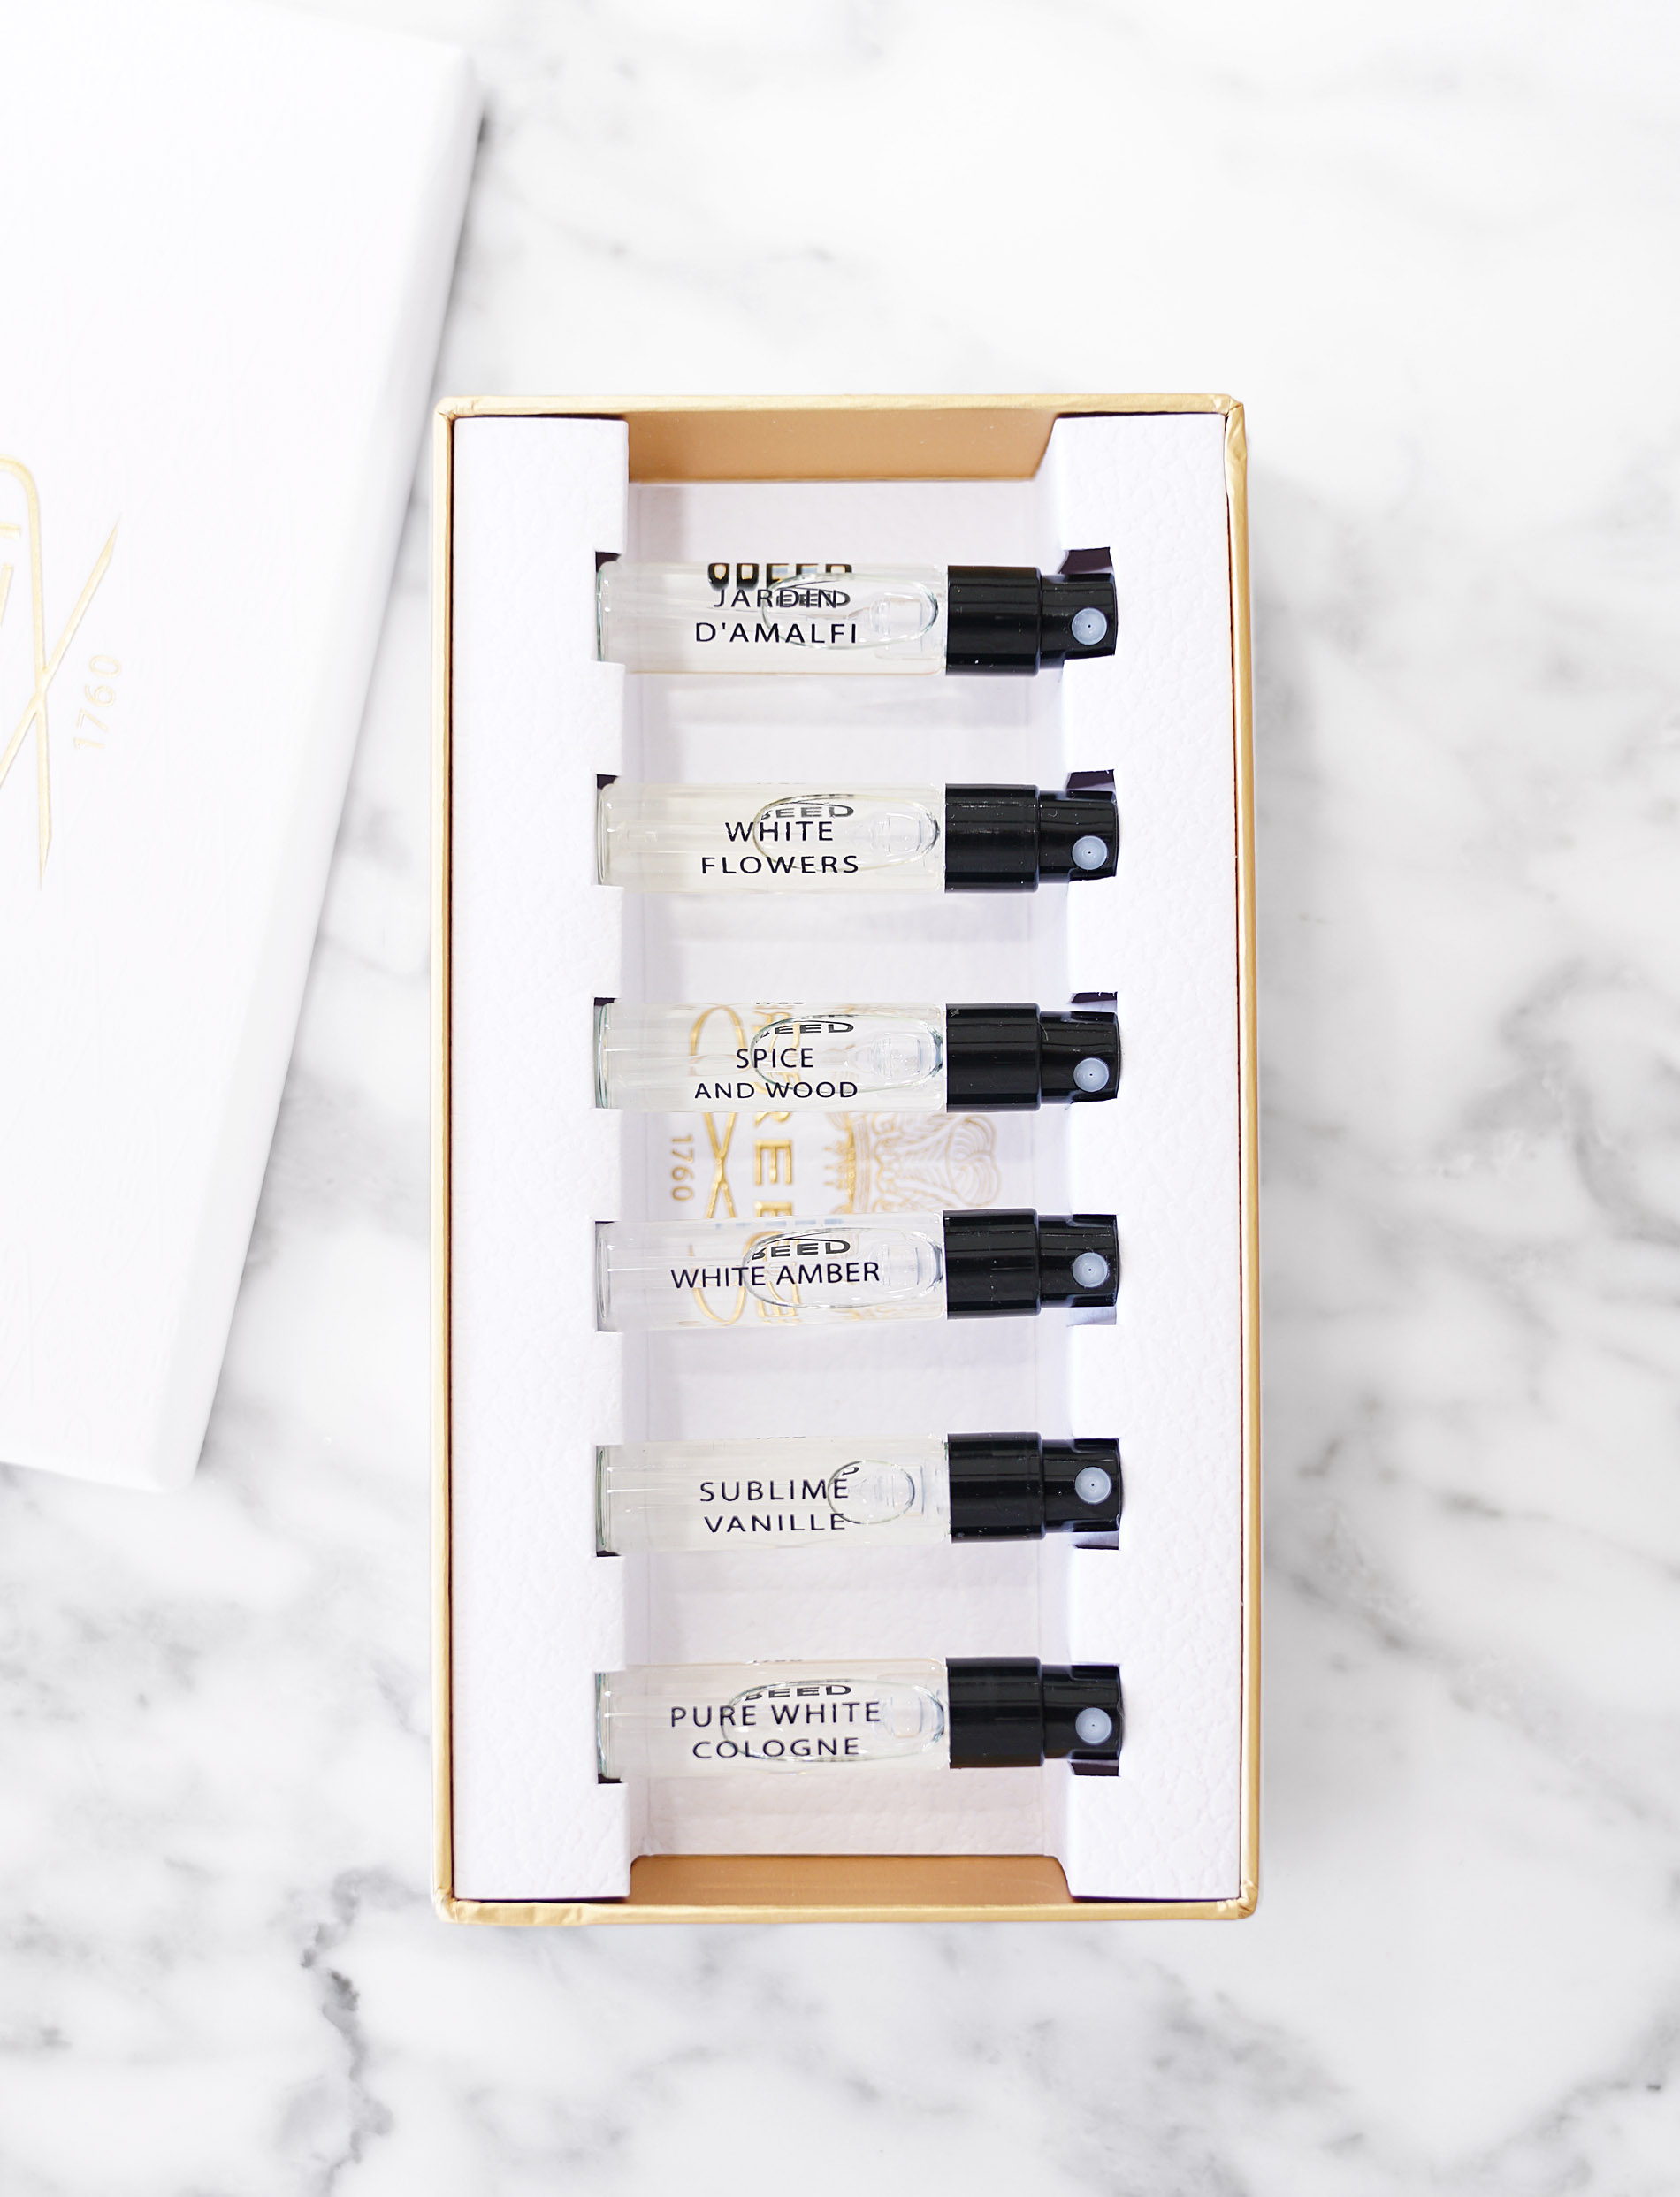 Creed Les Royales Exclusives White Amber And Coffret The Beauty